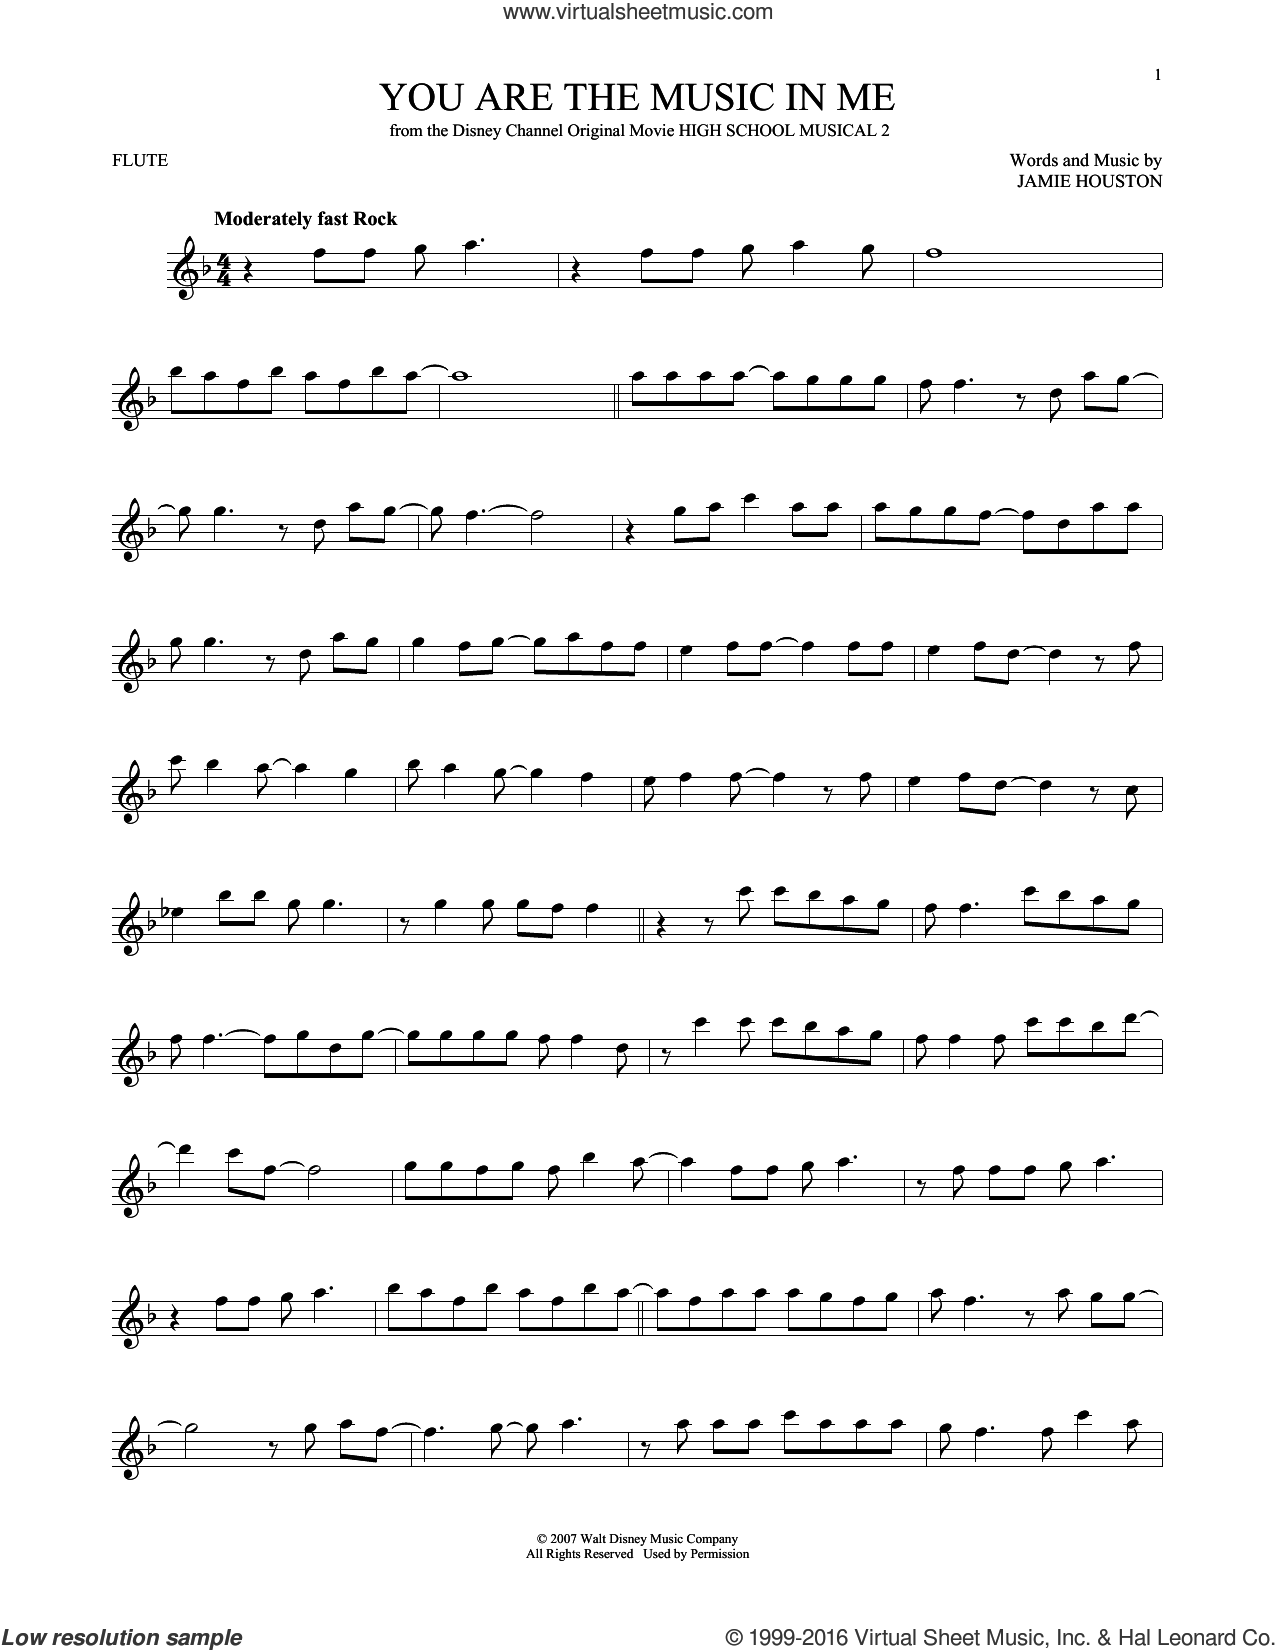 You Are The Music In Me sheet music for flute solo by Jamie Houston and Zac Efron and Vanessa Anne Hudgens. Score Image Preview.